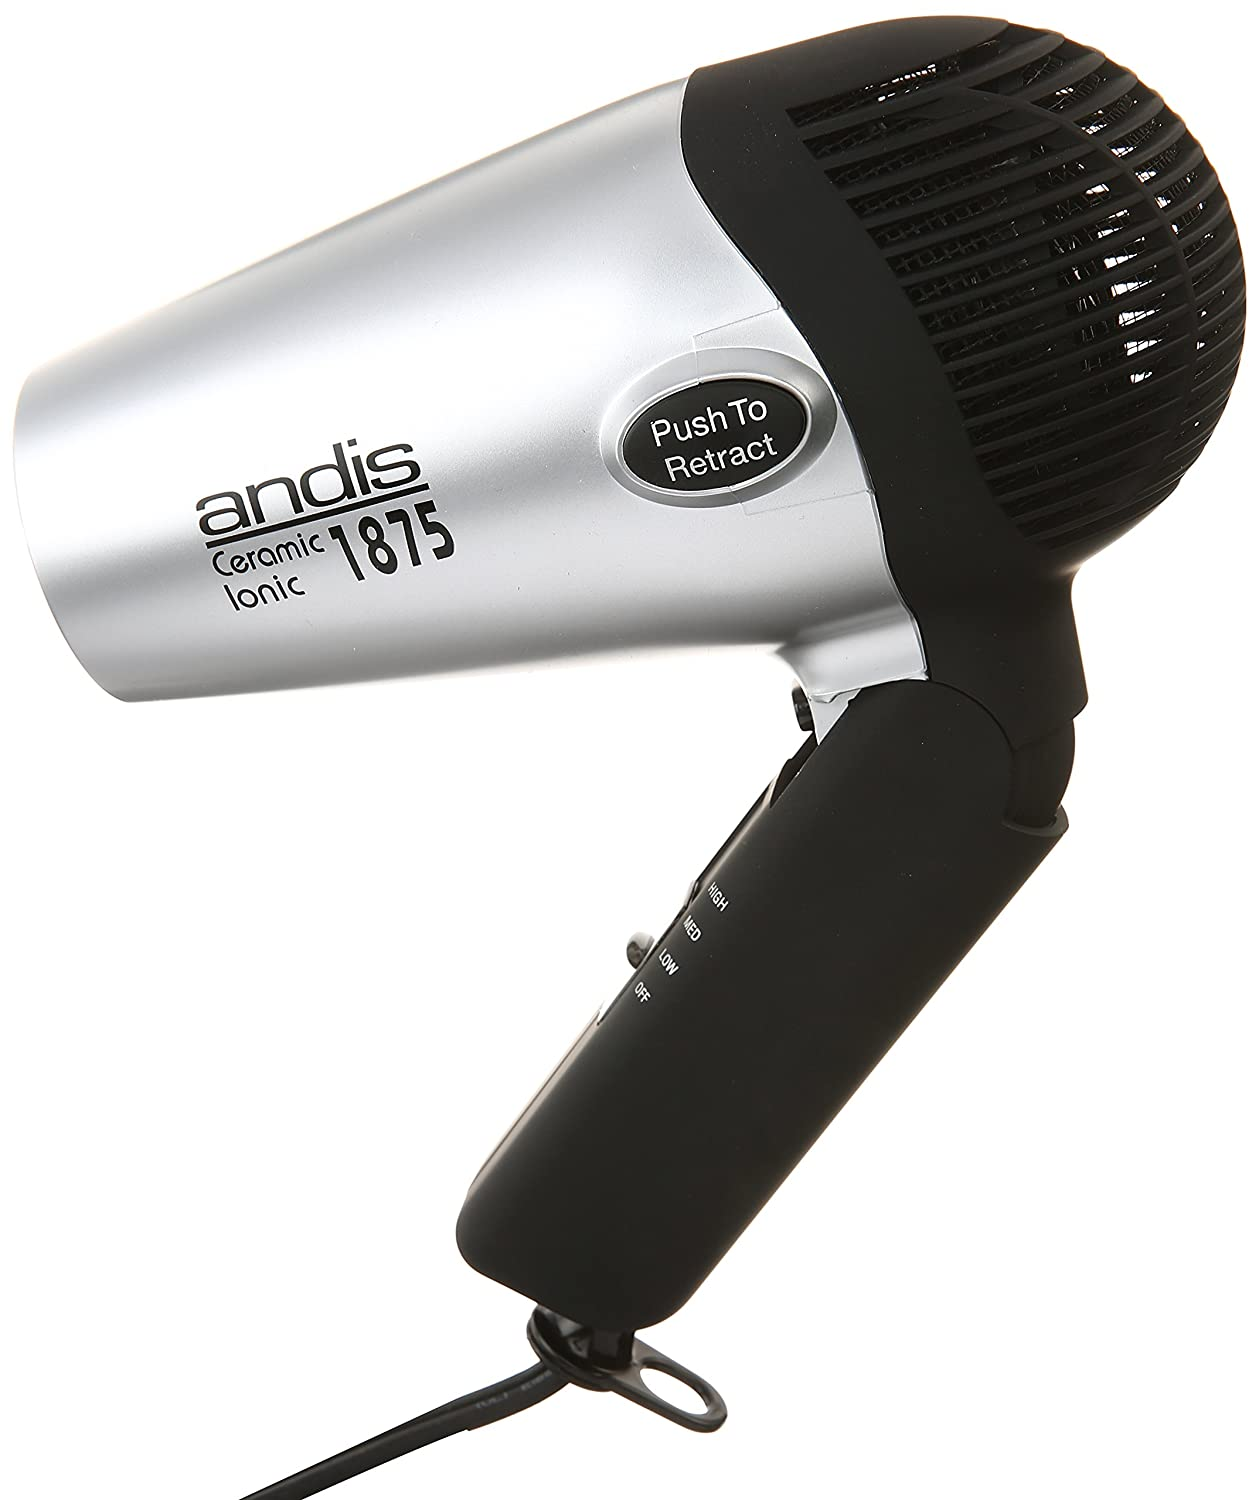 Andis Rc 2 Ionic 1875w Ceramic Hair Dryer With Folding